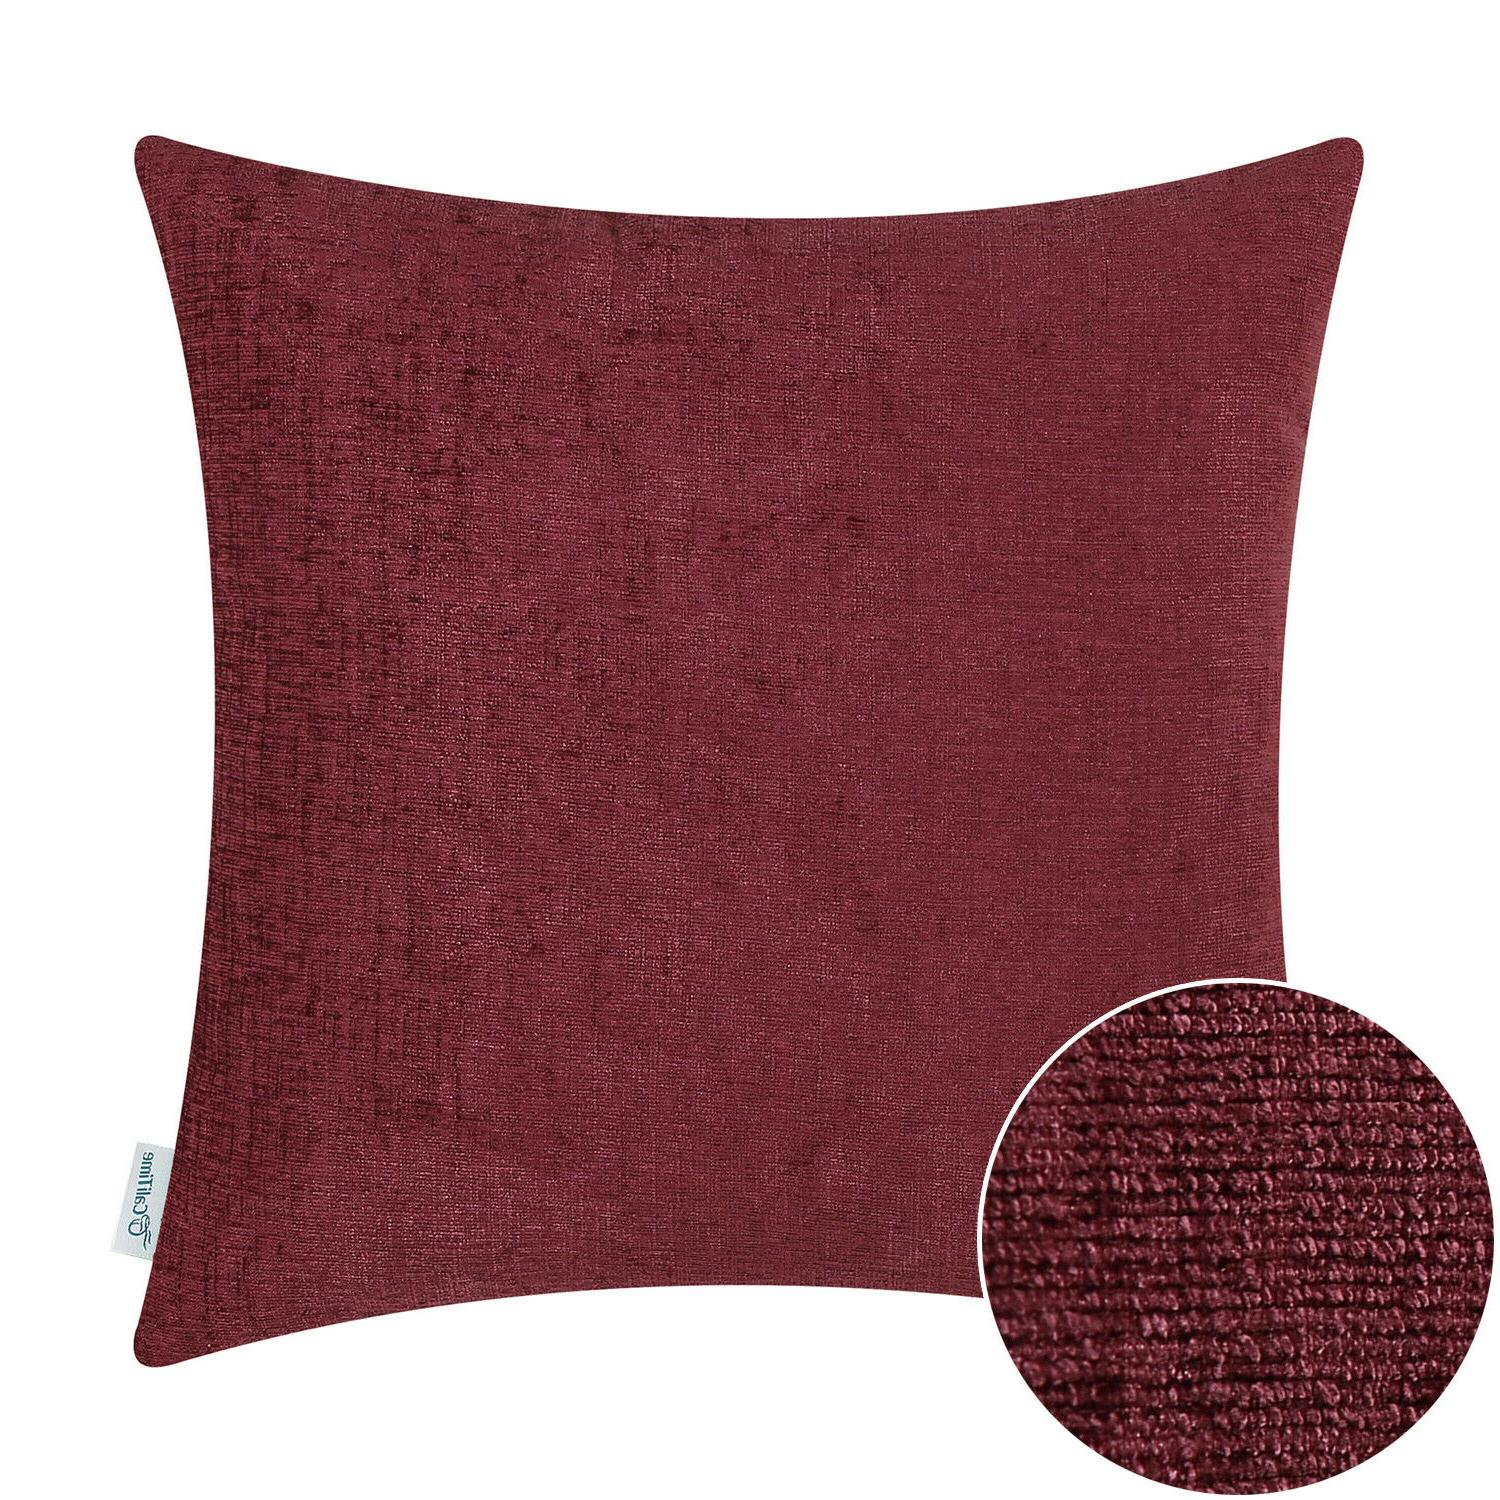 CaliTime Cushions Covers Throw Pillows Shells Home Decor Sol